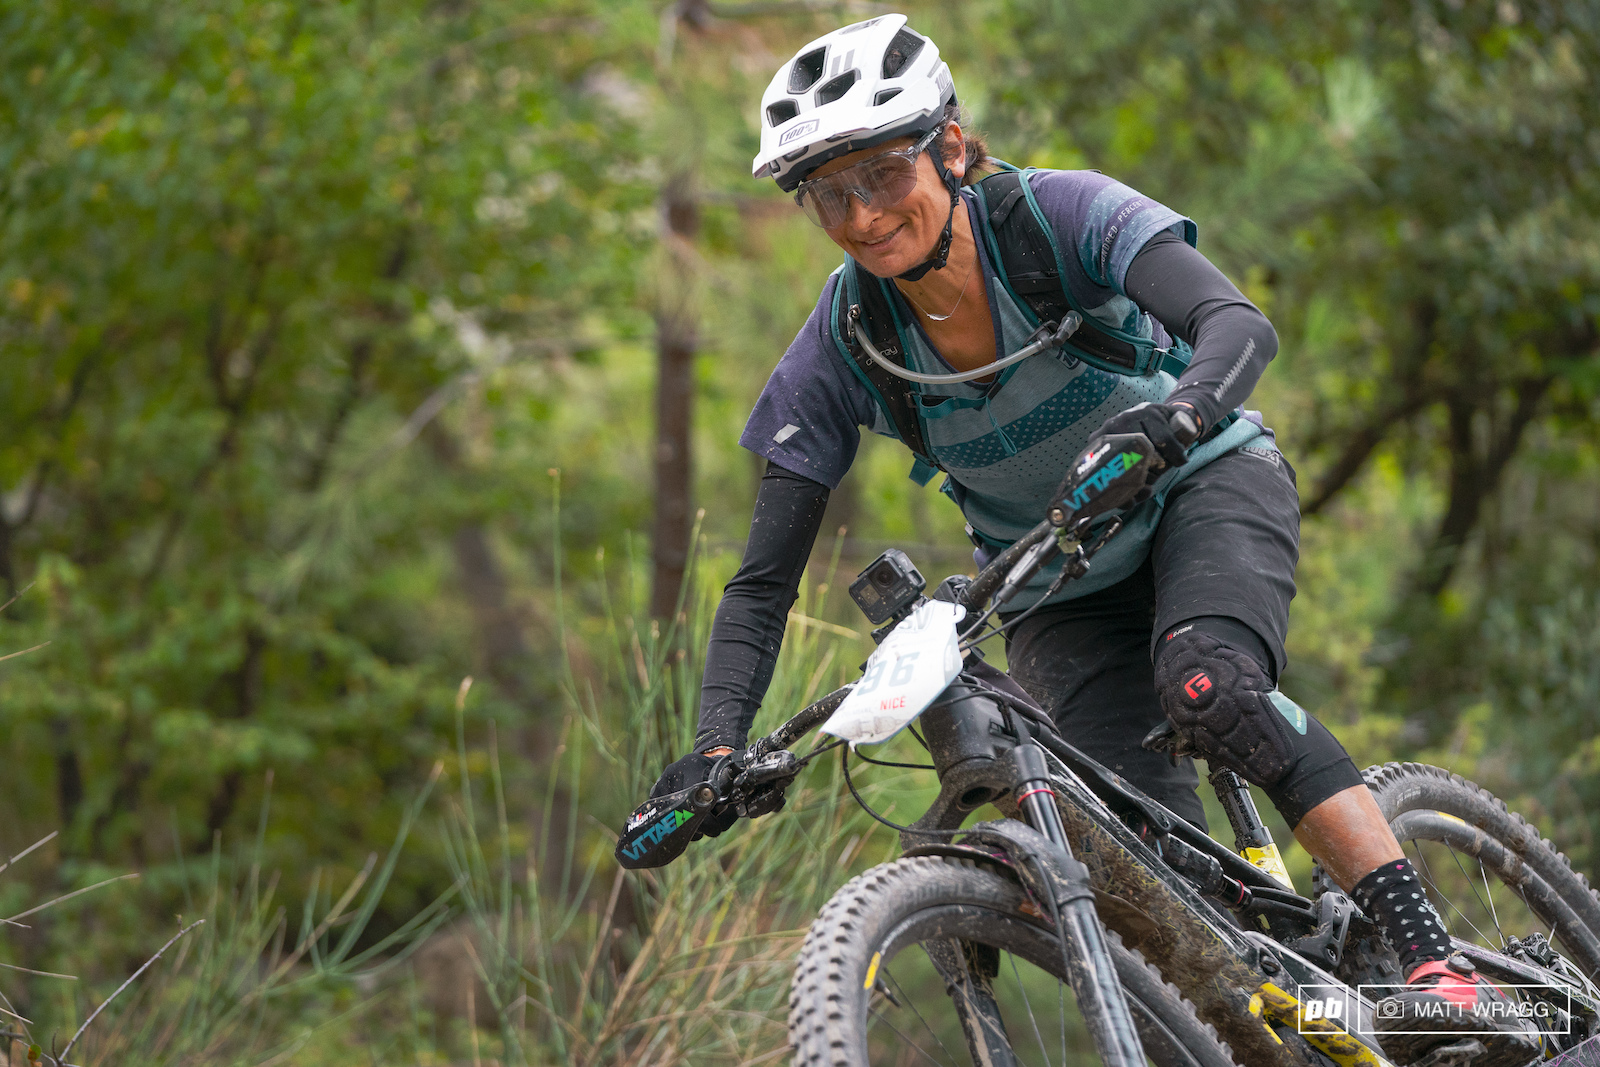 Nadine Sapin also took on both the E-EWS coming off second place behind Tracy Moseley to take the victory at the Trans V.